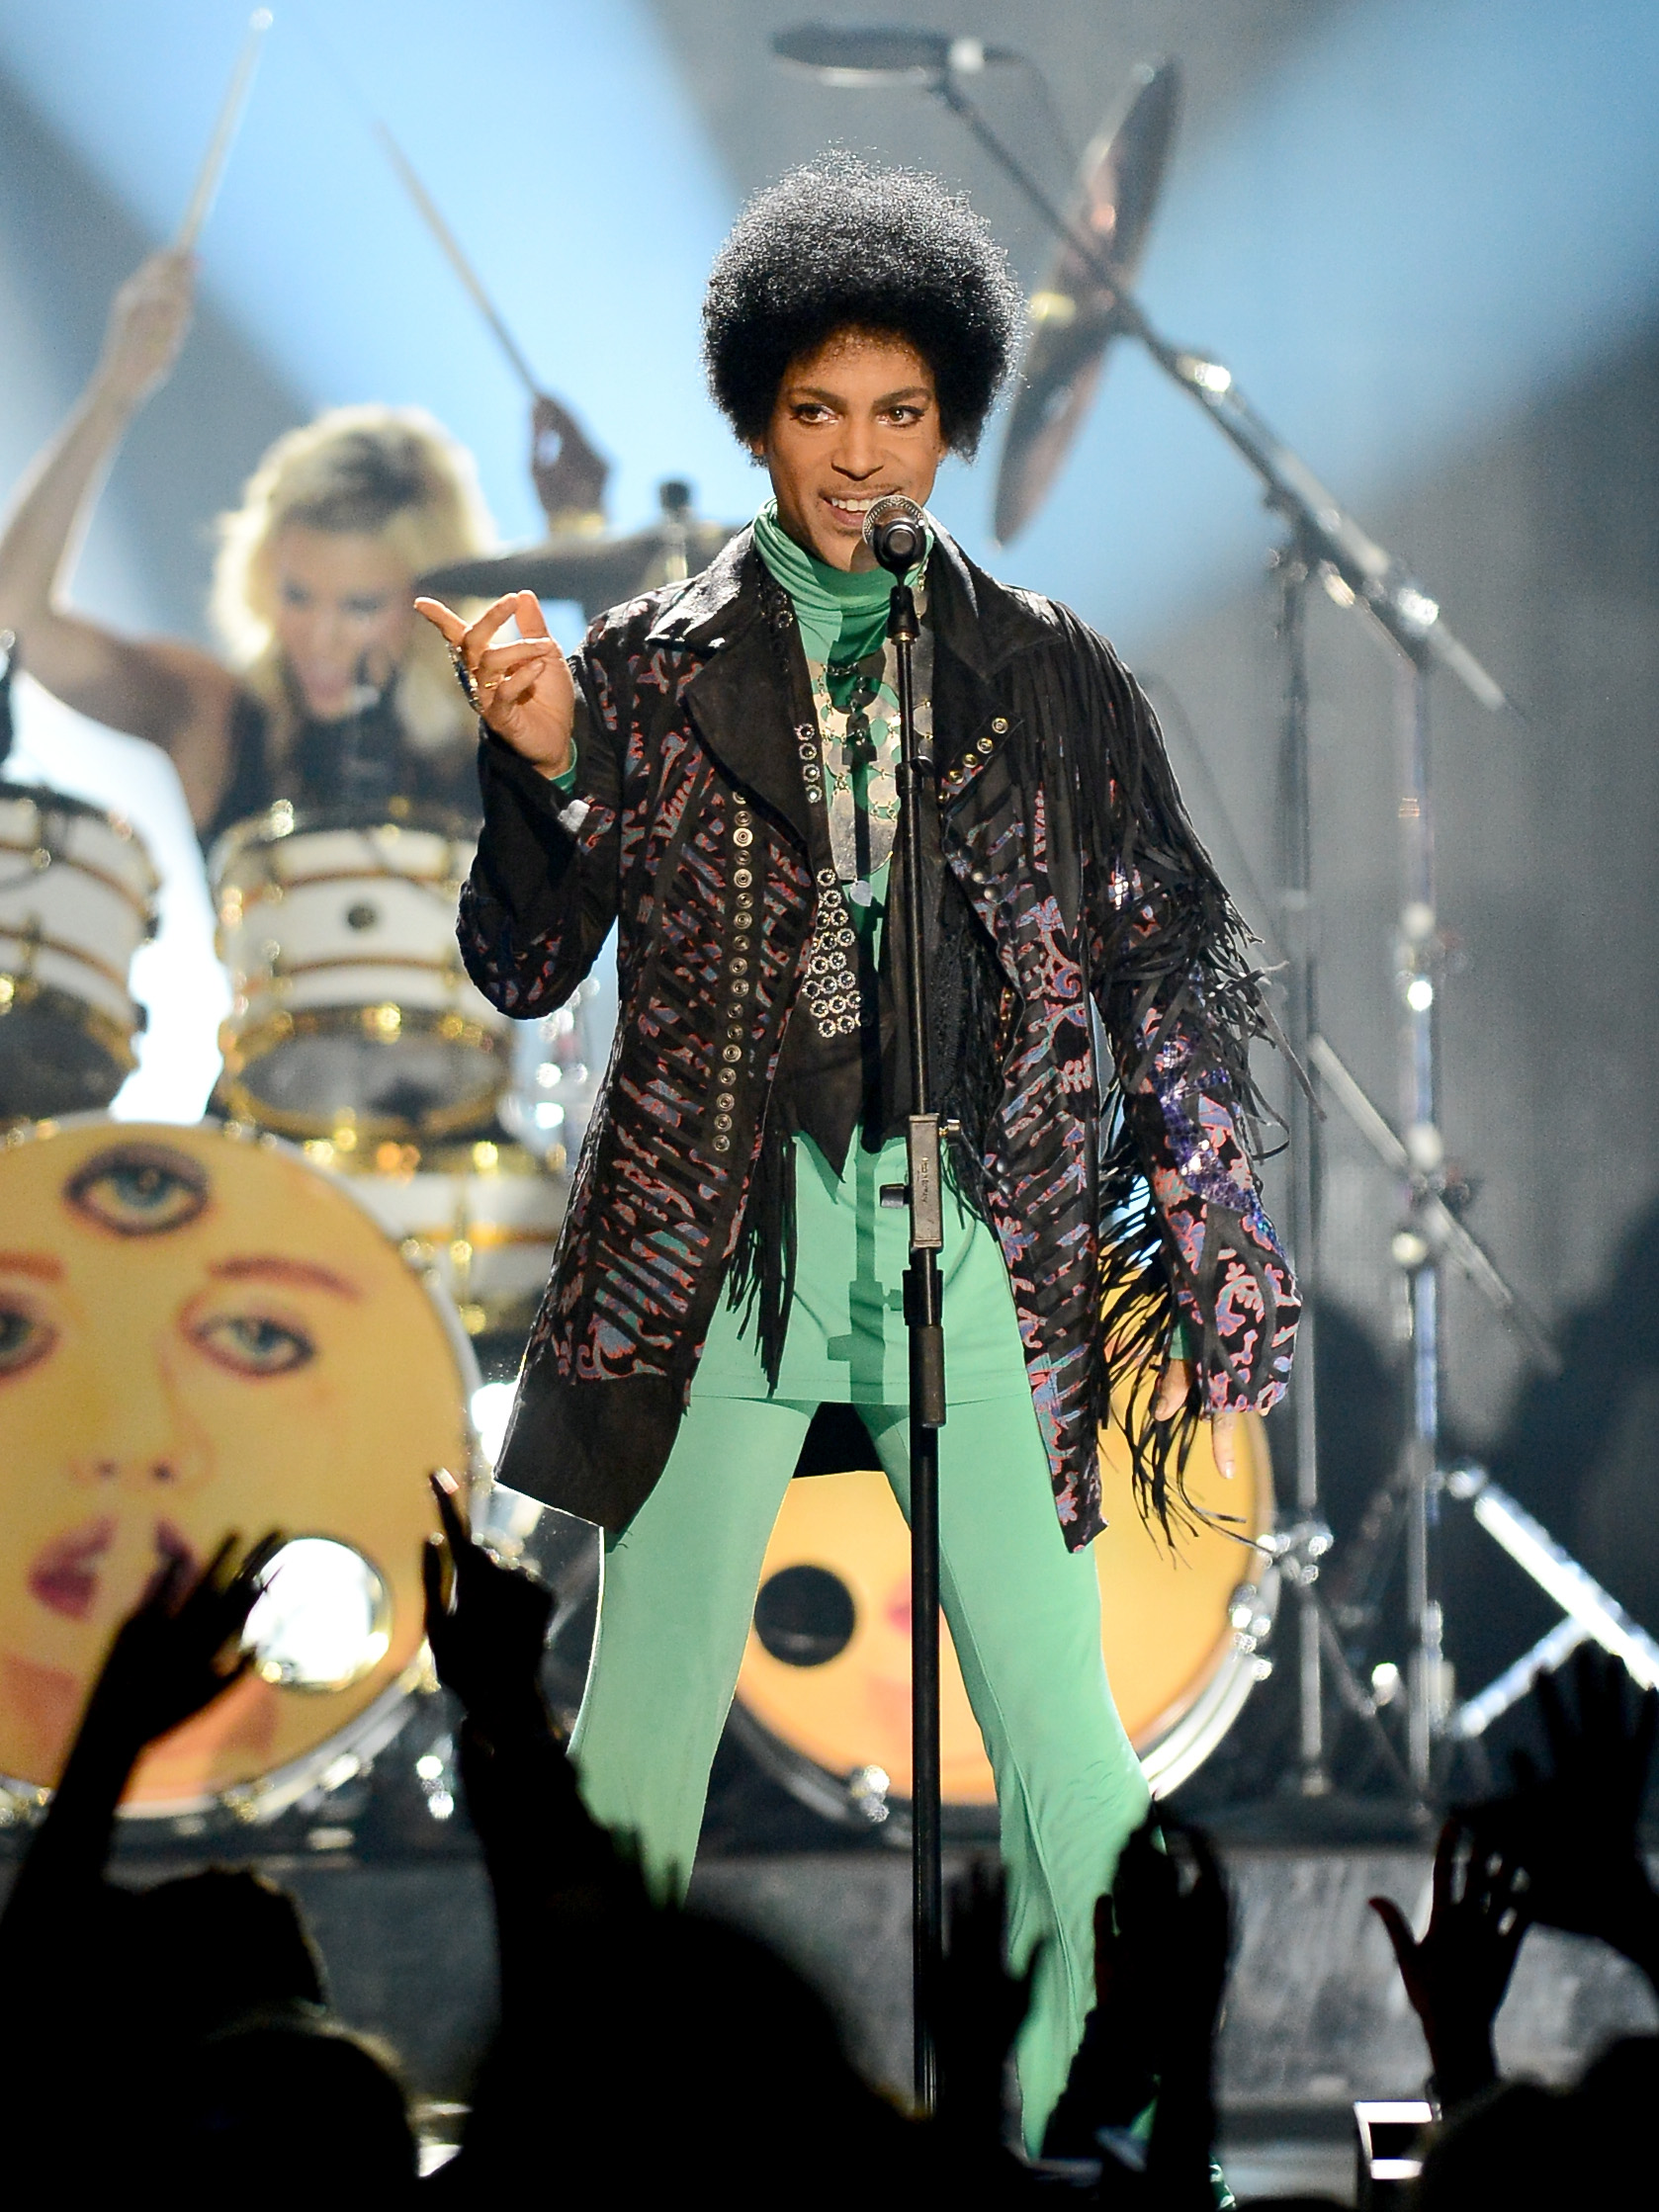 Prince Announces Memoirs With Booming, Intimate NYC Club Show